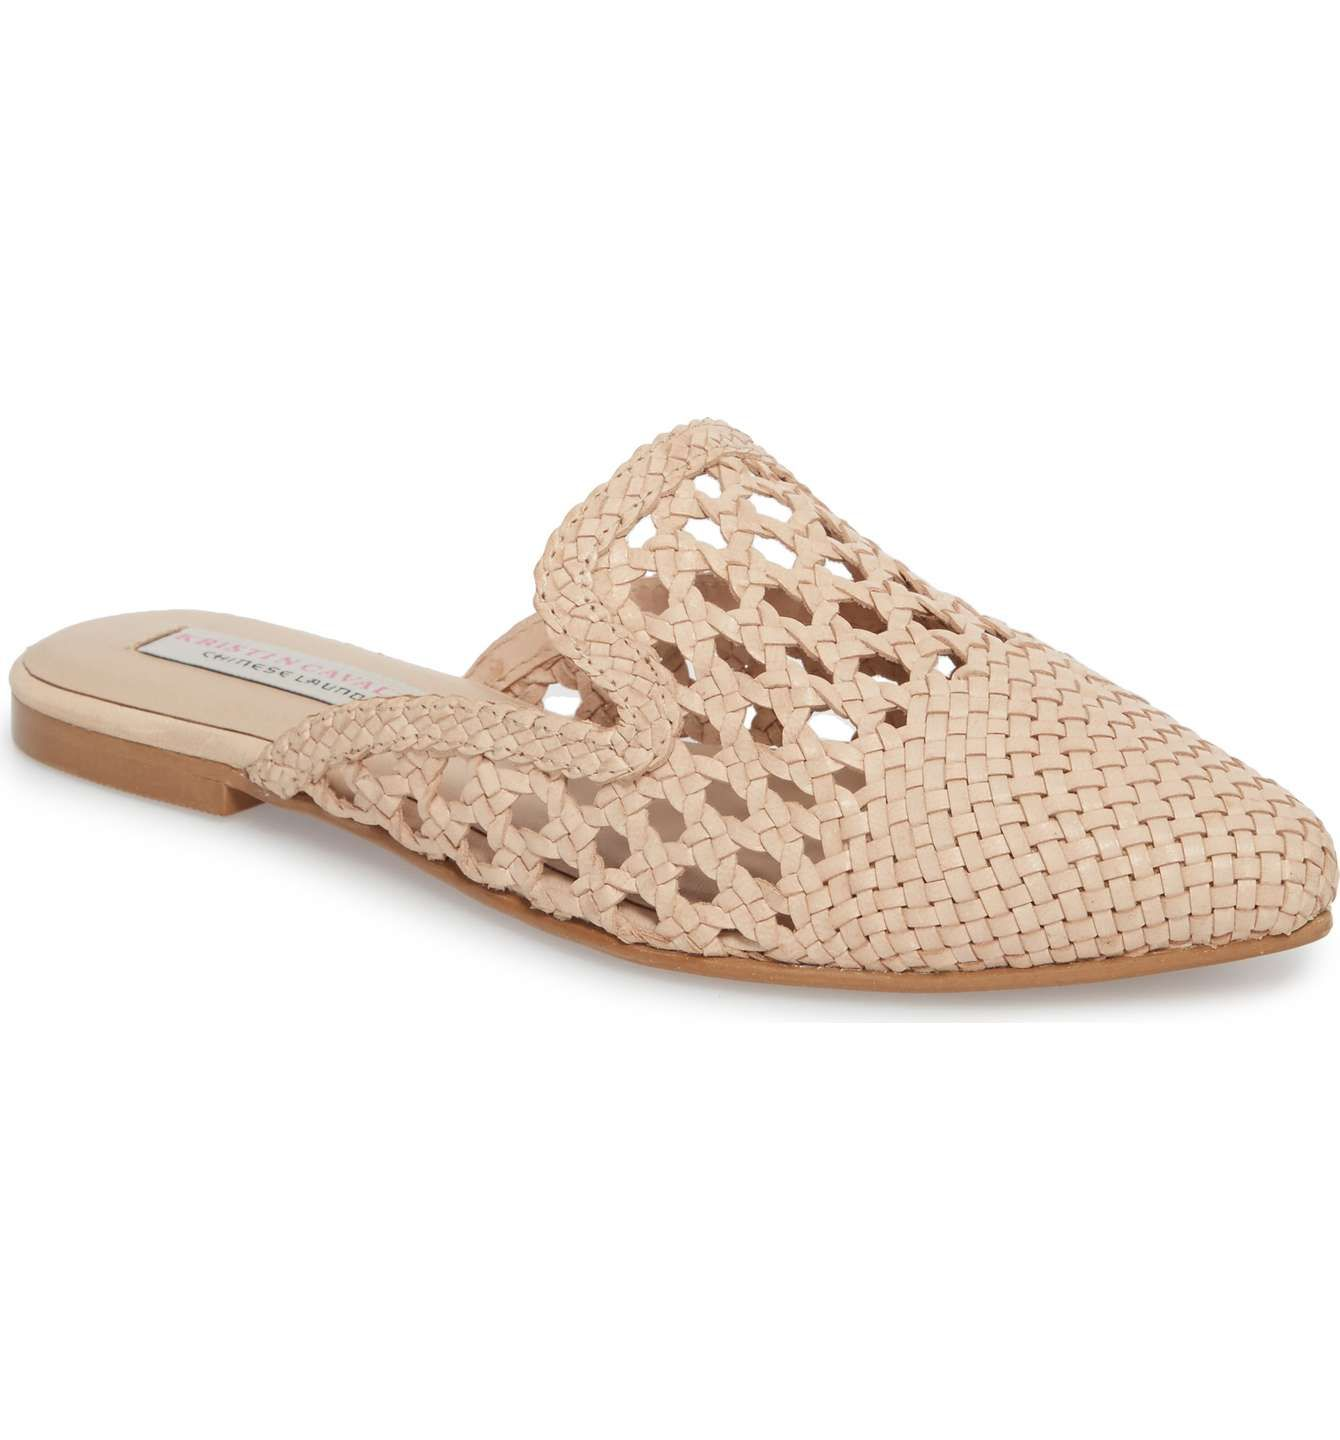 Josef Seibel Camille Womens Casual Mules - Sandals from